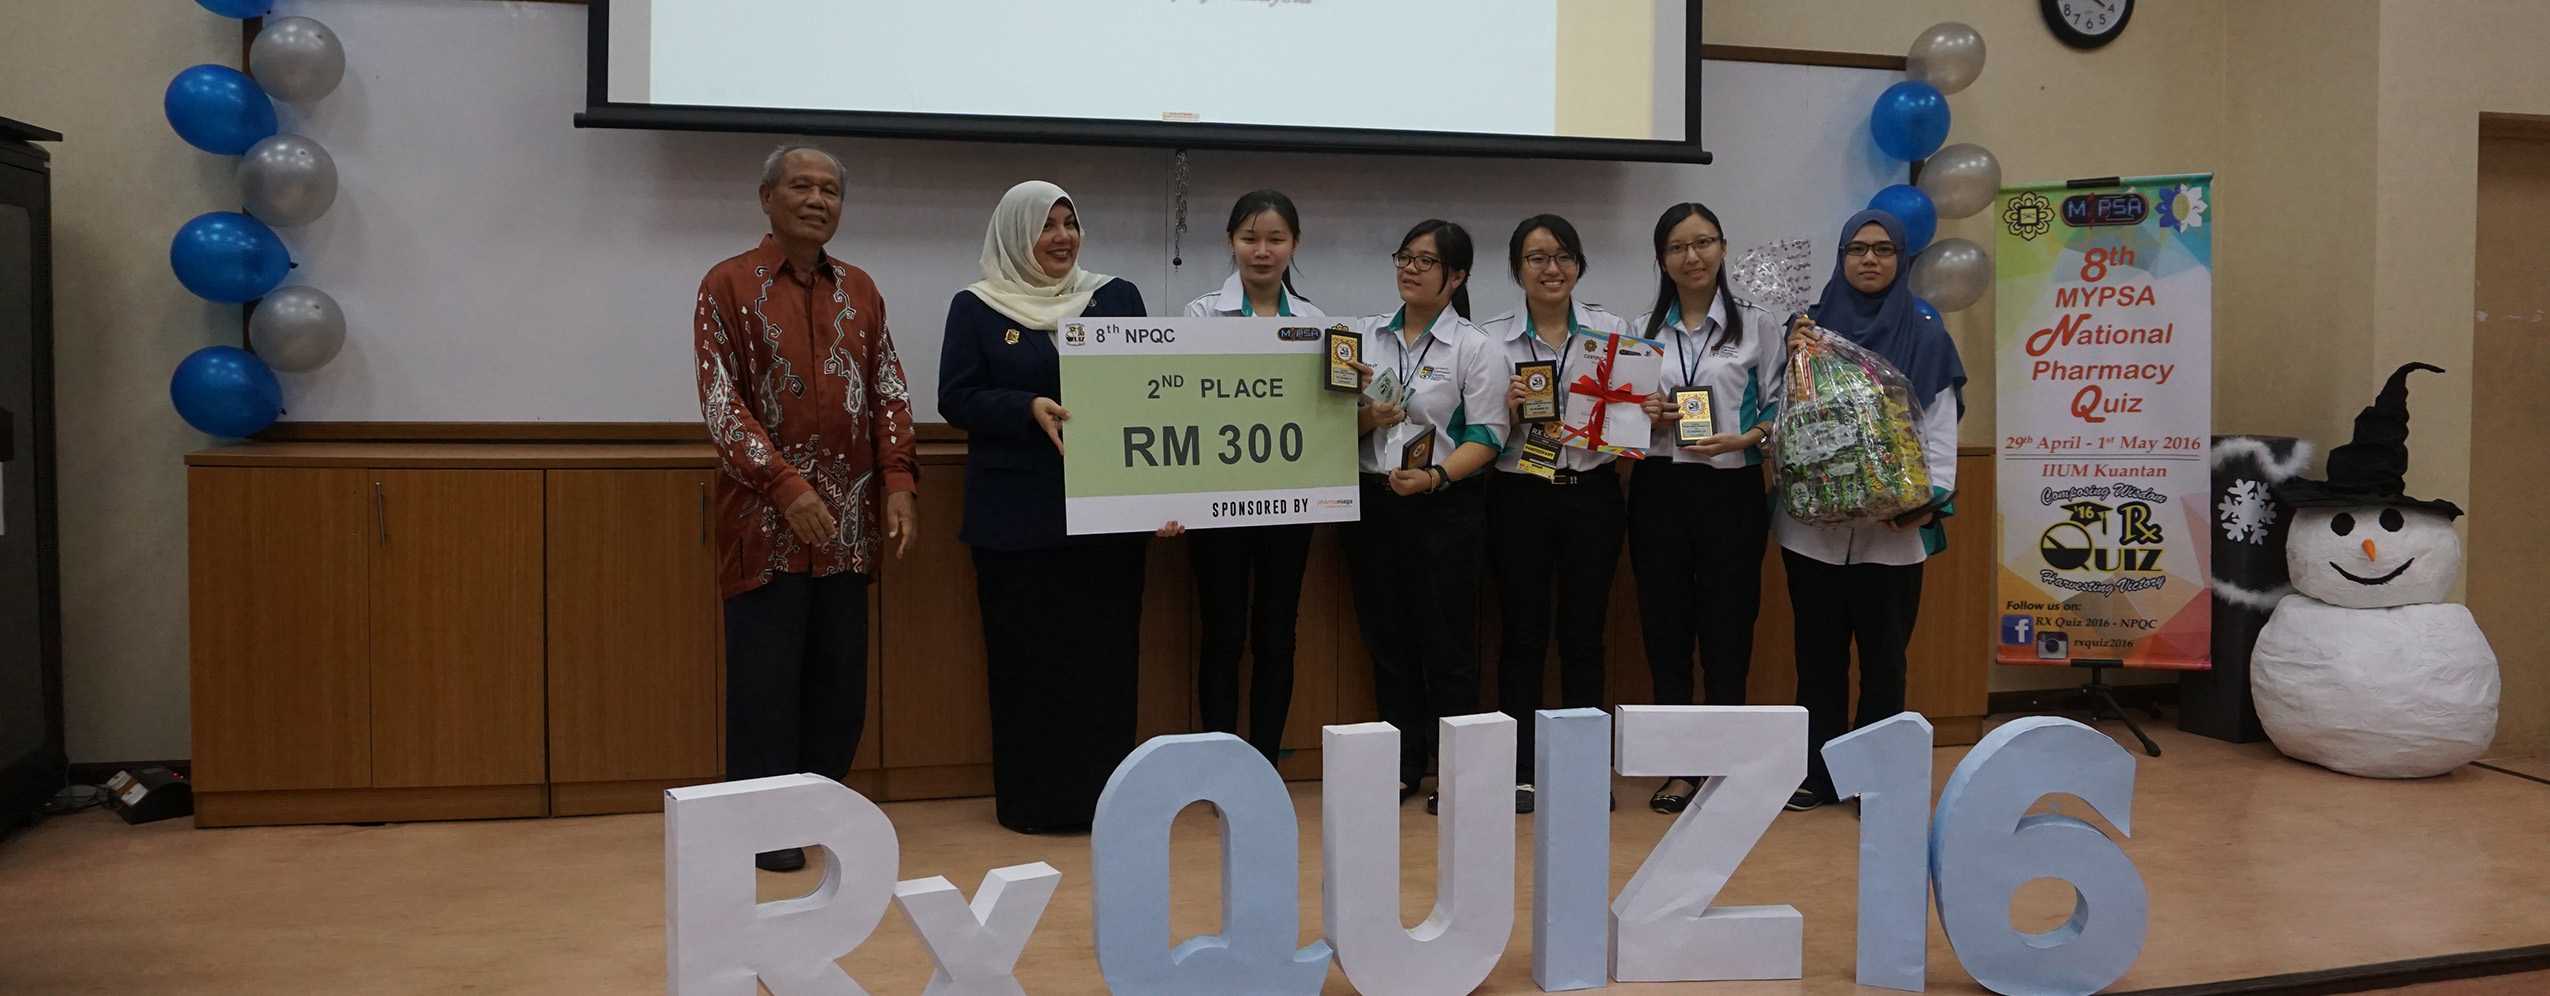 2nd place in 8th Rx Quiz 2016